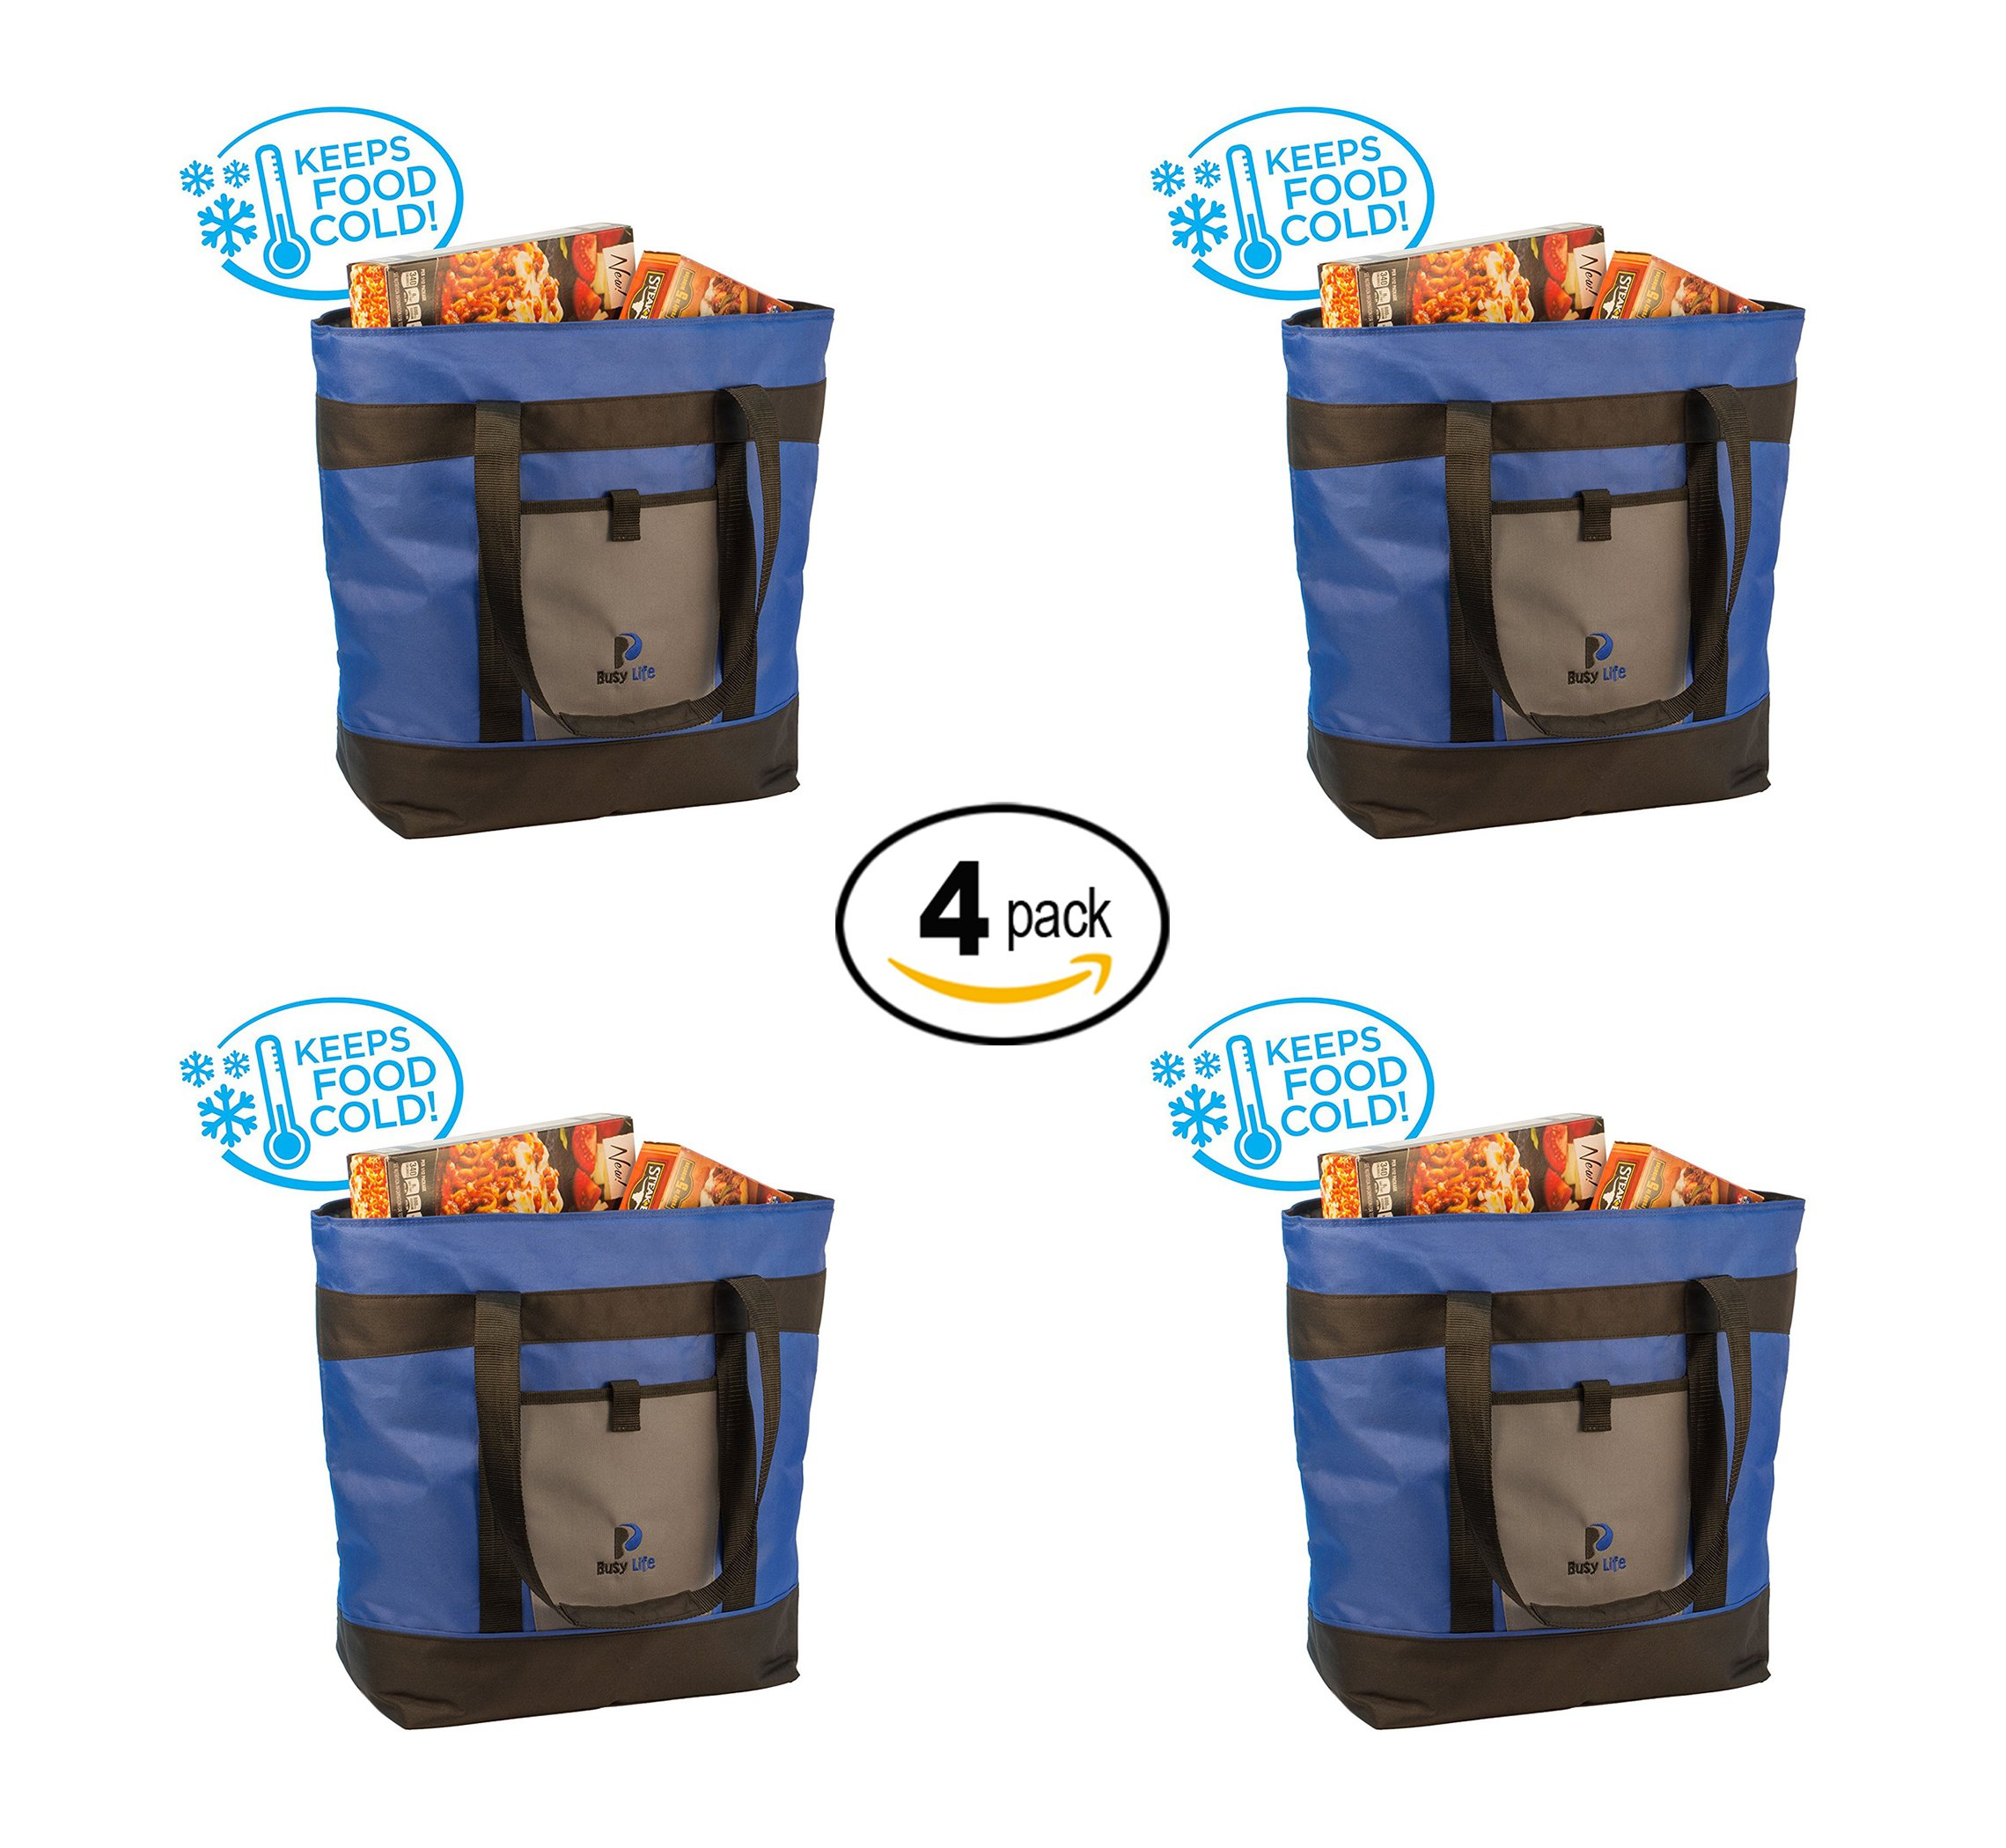 Insulated Cooler Bag Gift Pack. Busy Life Insulated Grocery Tote Perfect for Hot and Cold Food. Large 10 Gallon Capacity - Never Bring Home Melted Ice Cream Again. (4 Units)